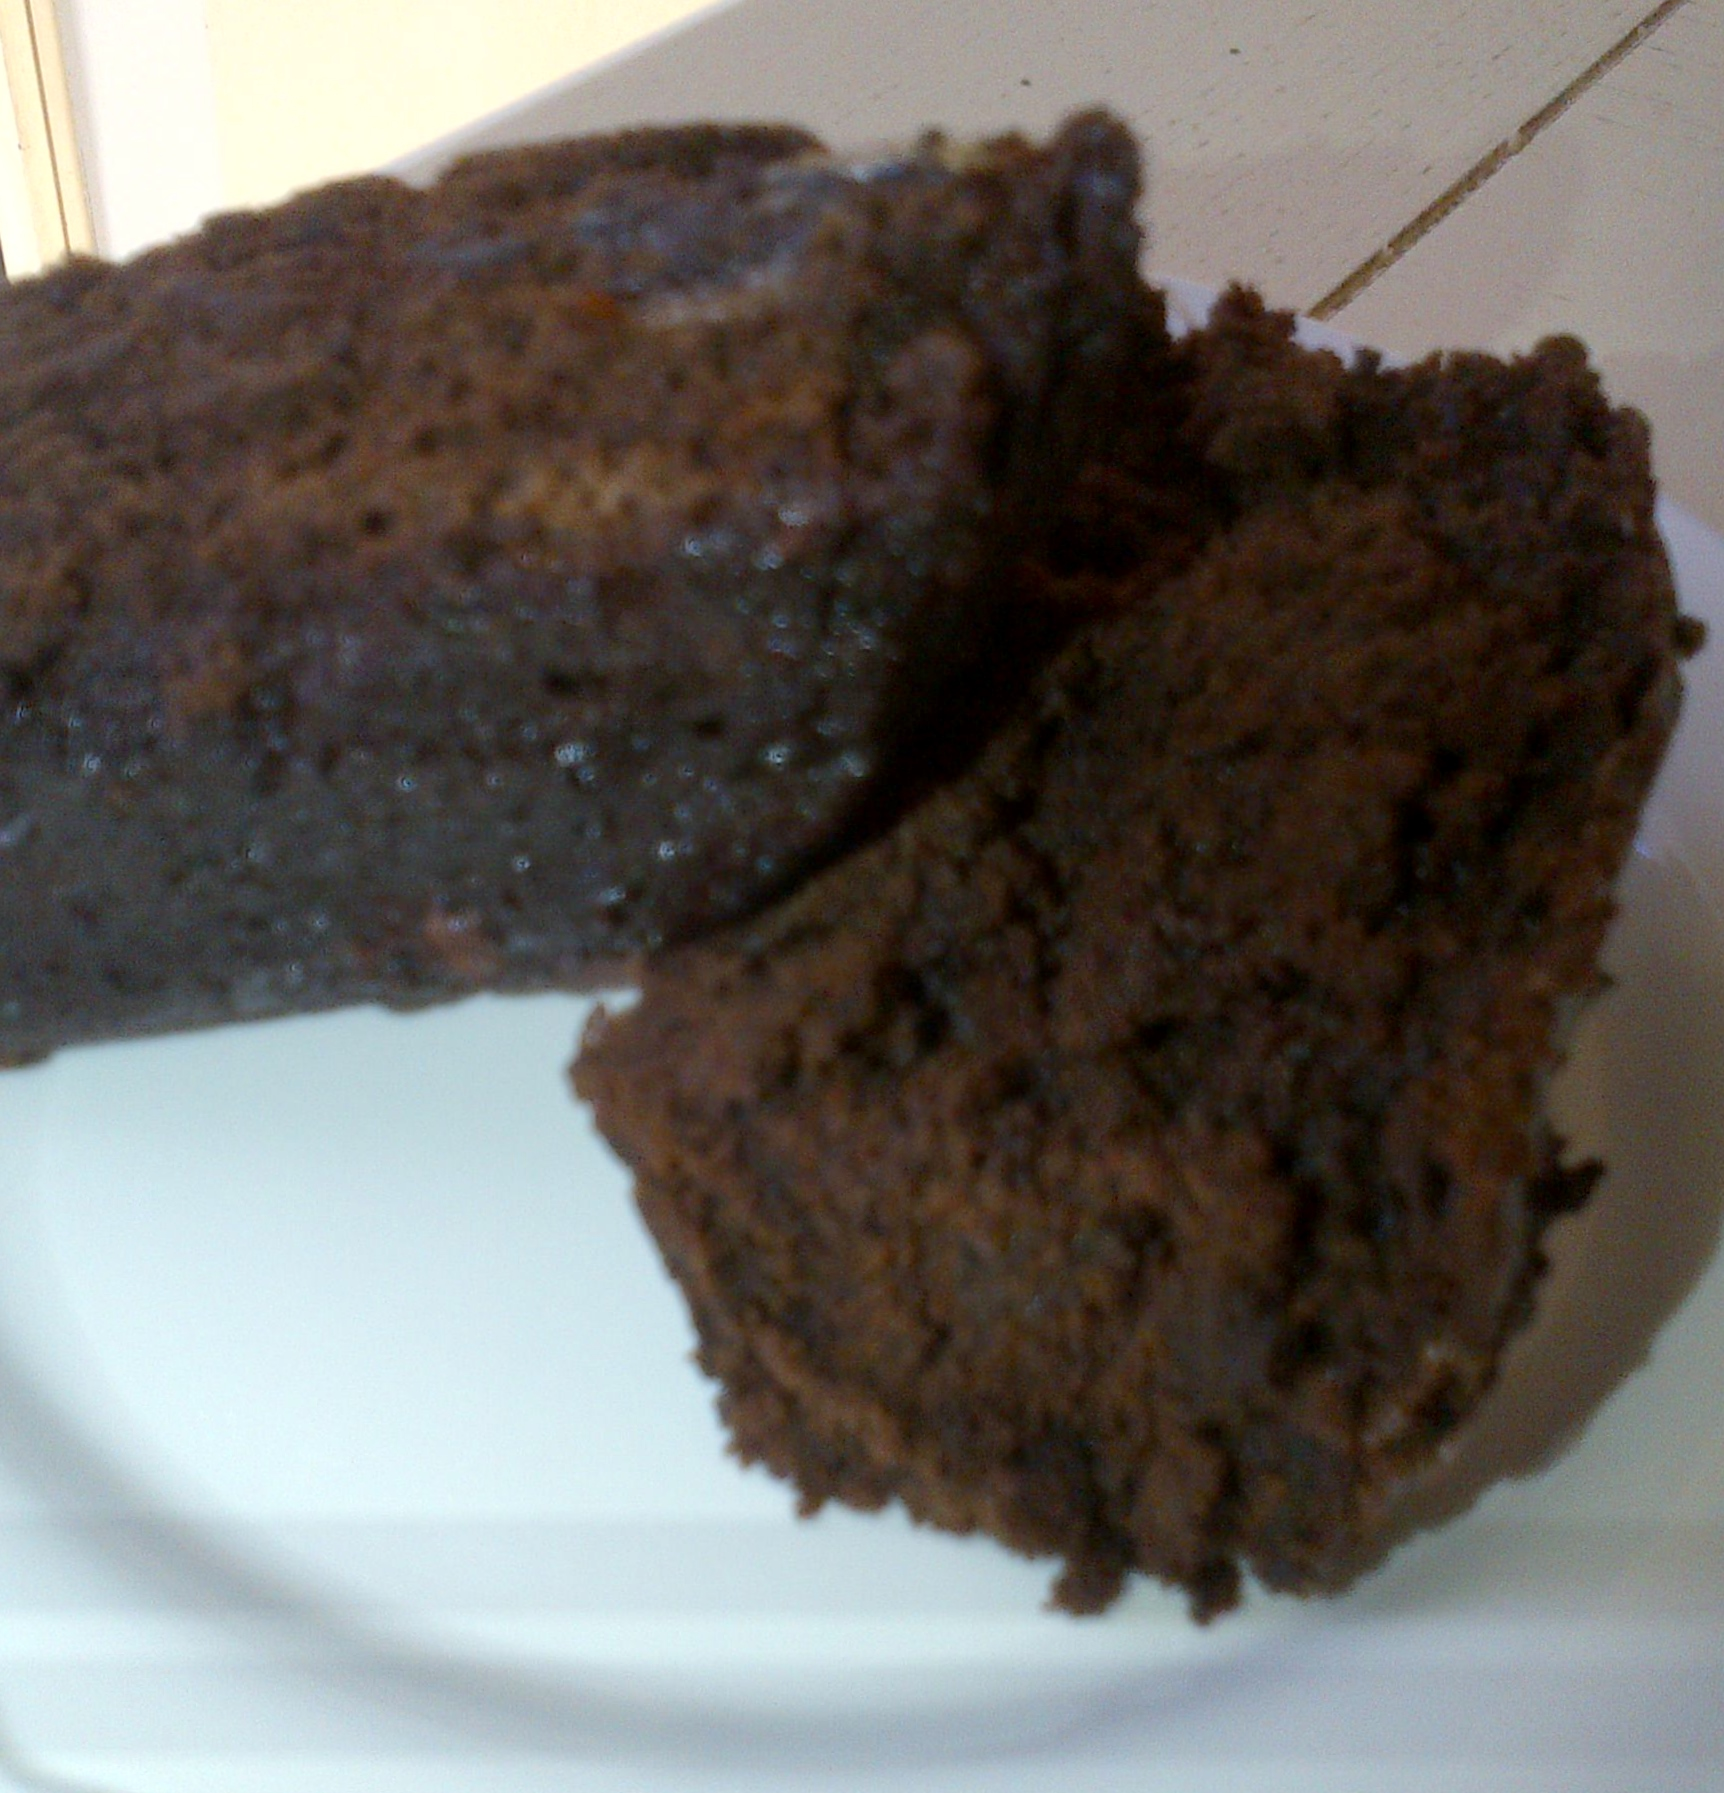 sticky, chocolate prune cakechoccy sticky prune cake | VeloVoices ...